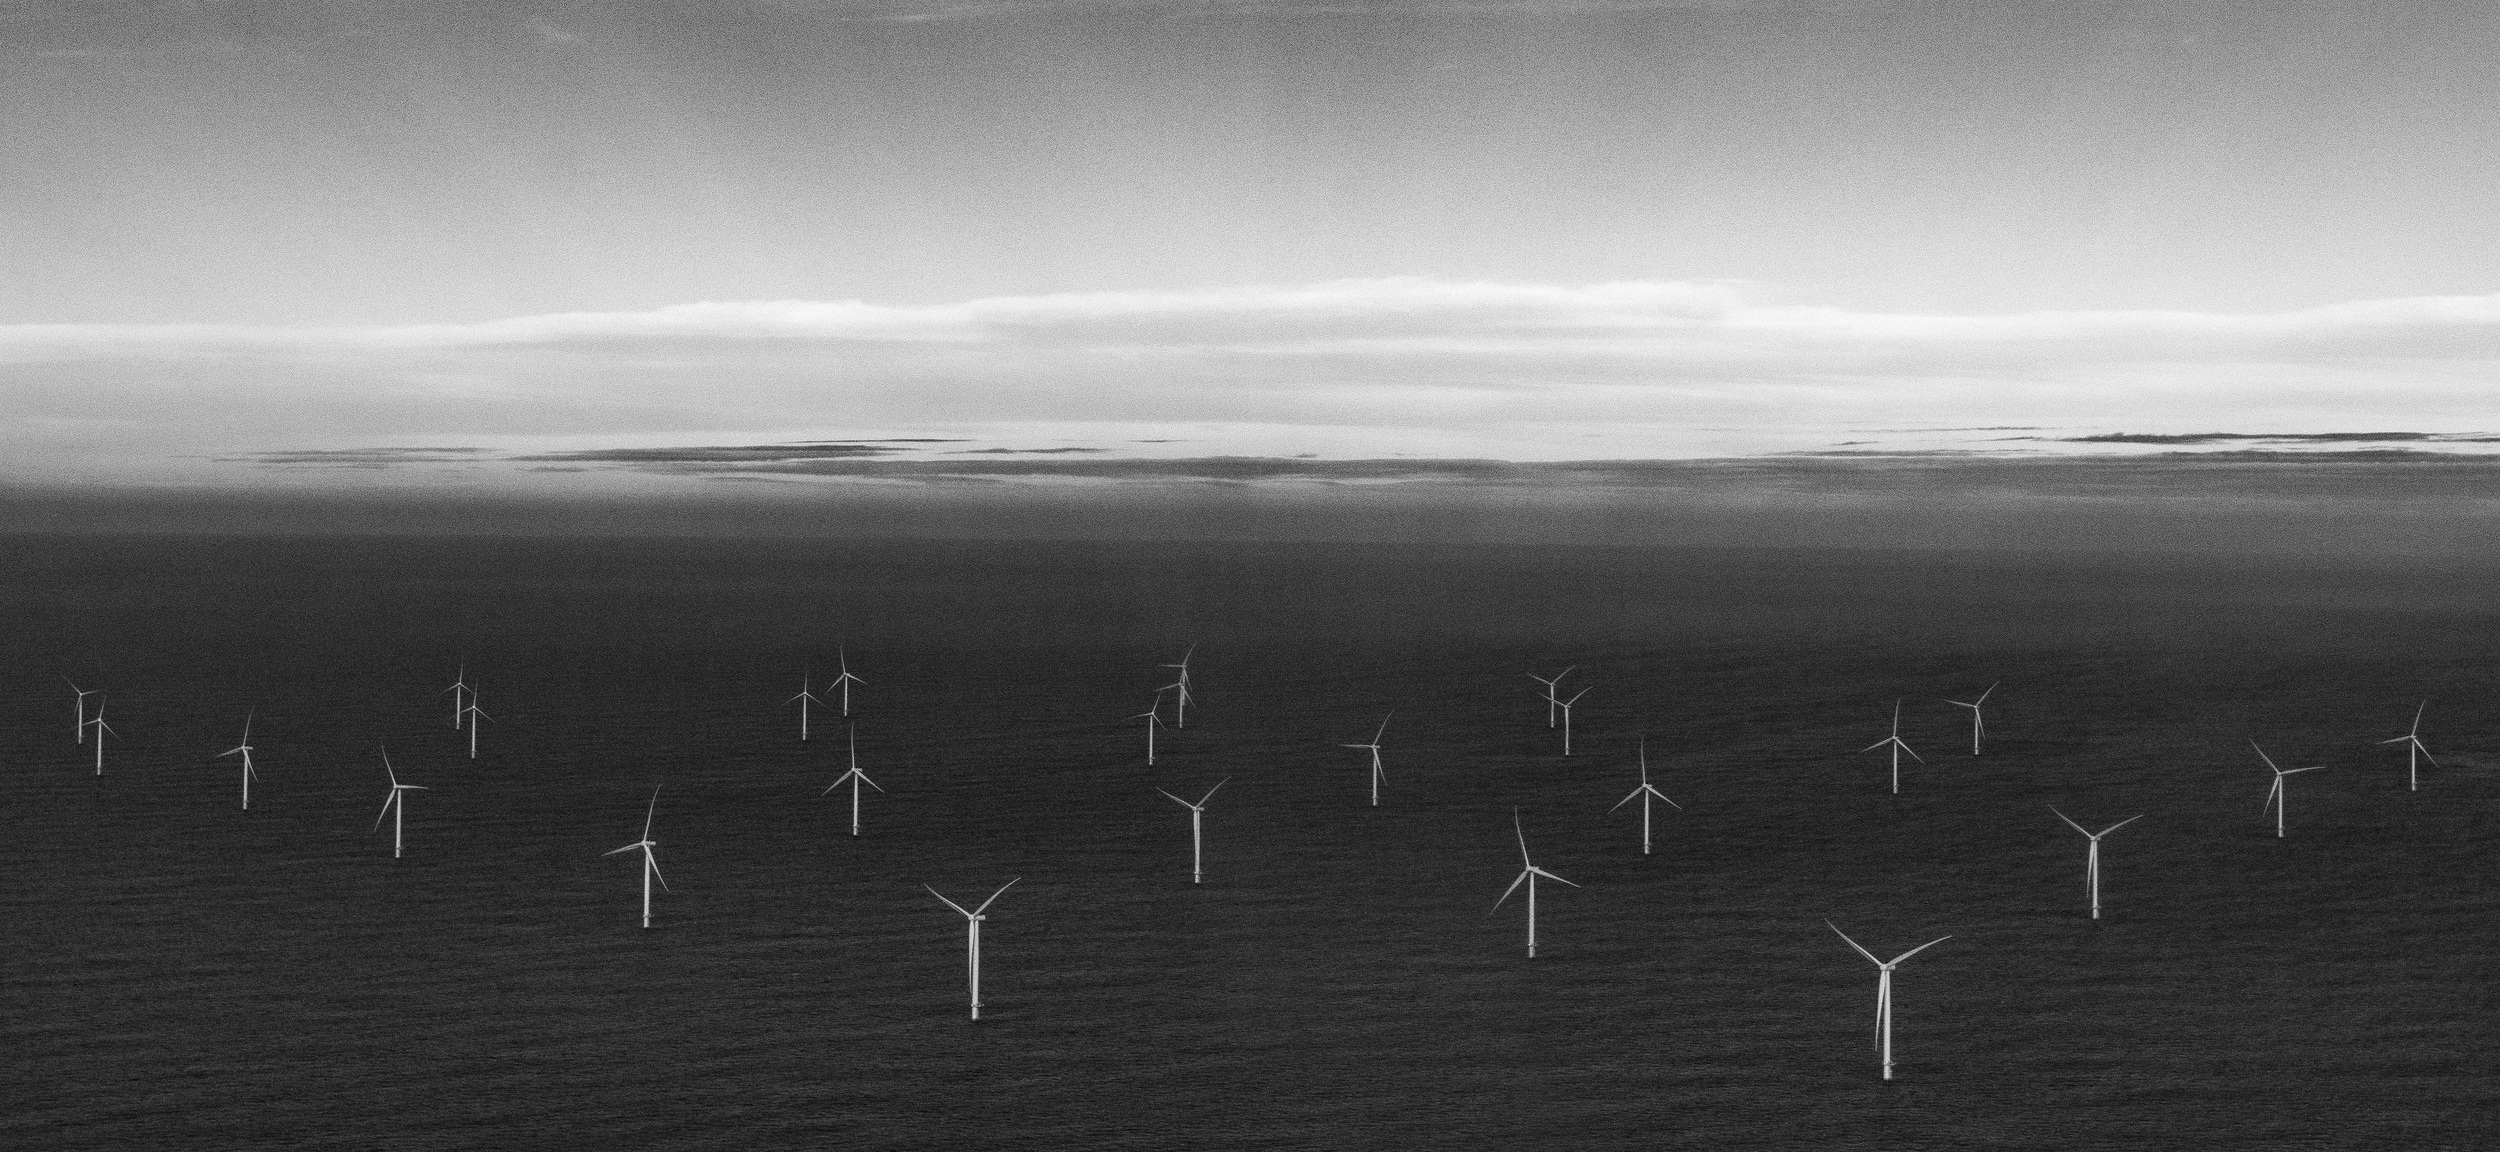 Race Bank Offshore Wind Farm, 27km off the coast of Norfolk, UK. Photo by    Nicholas Doherty    on    Unsplash